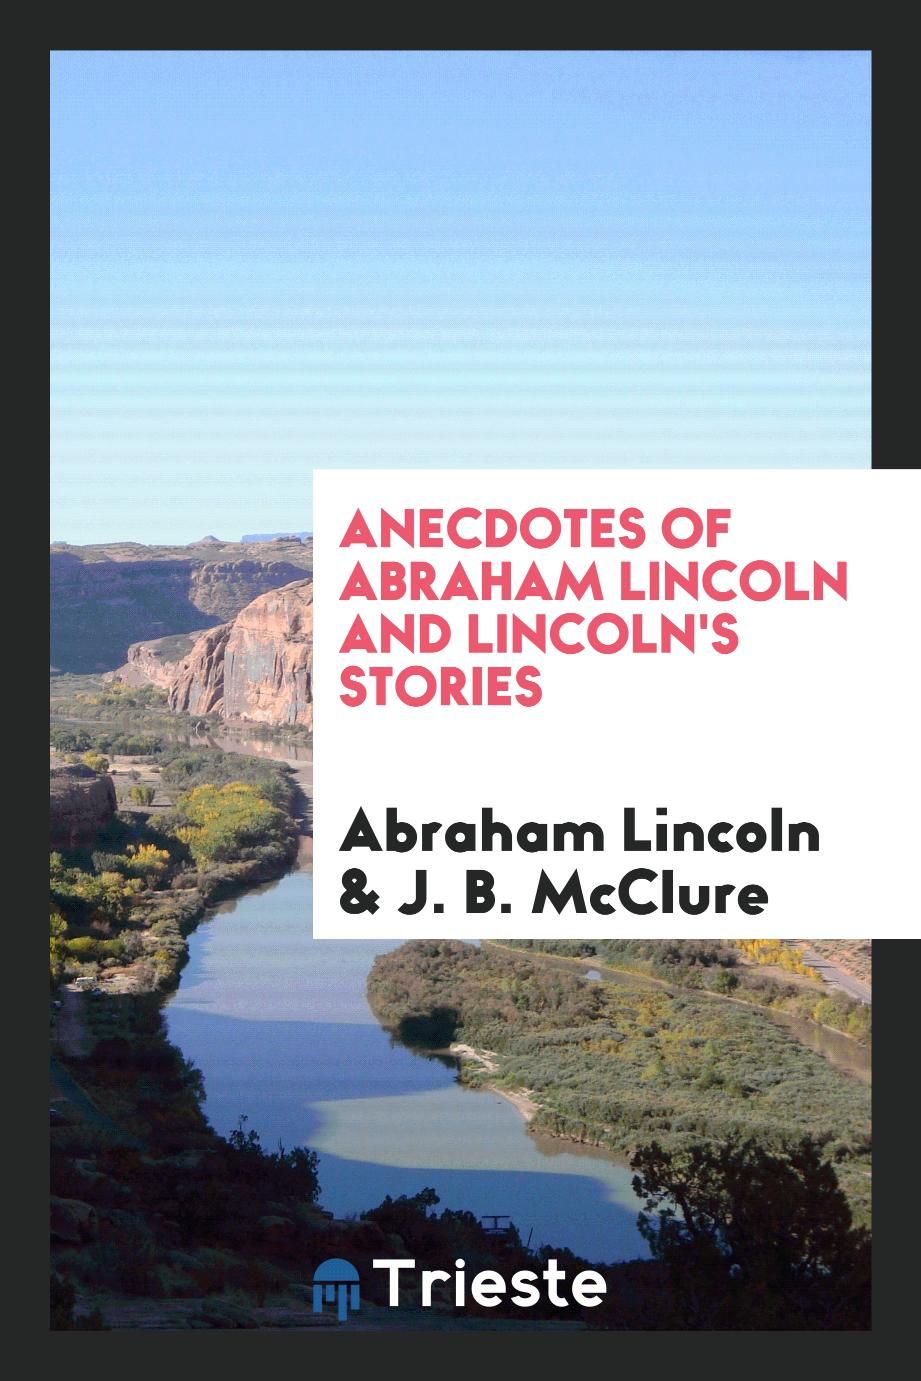 Anecdotes of Abraham Lincoln and Lincoln's Stories